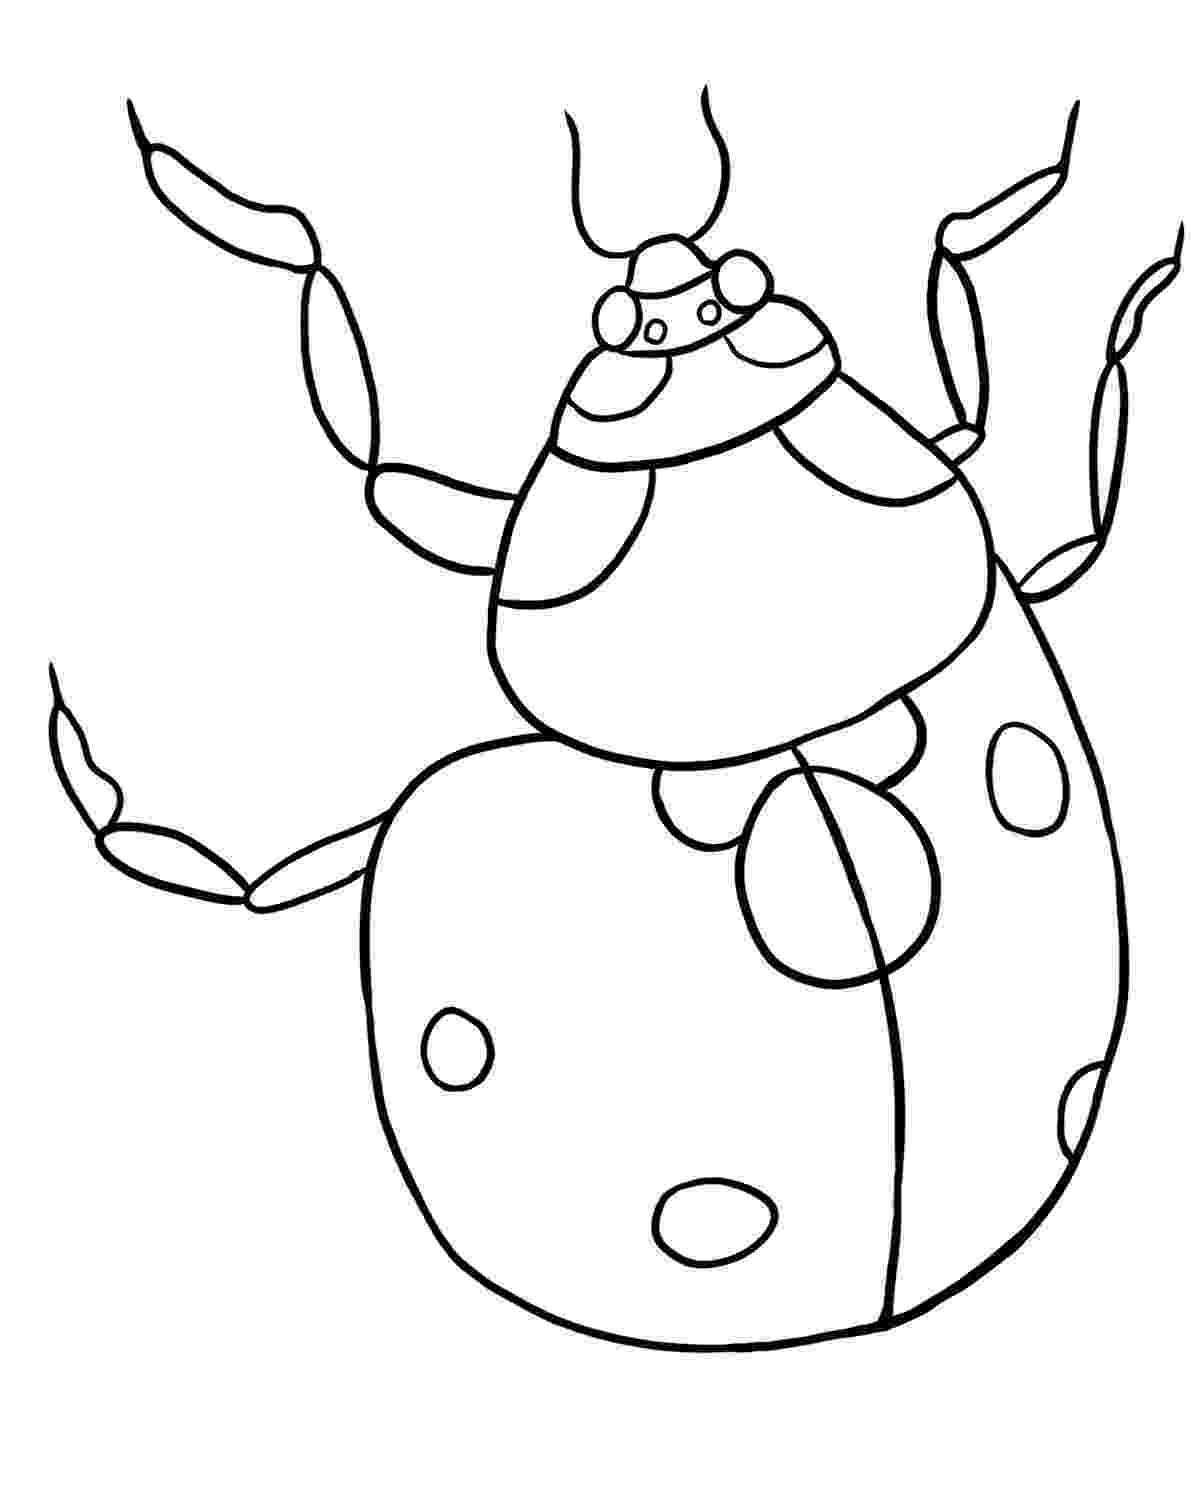 ladybugs coloring pages ladybug coloring pages to download and print for free ladybugs coloring pages